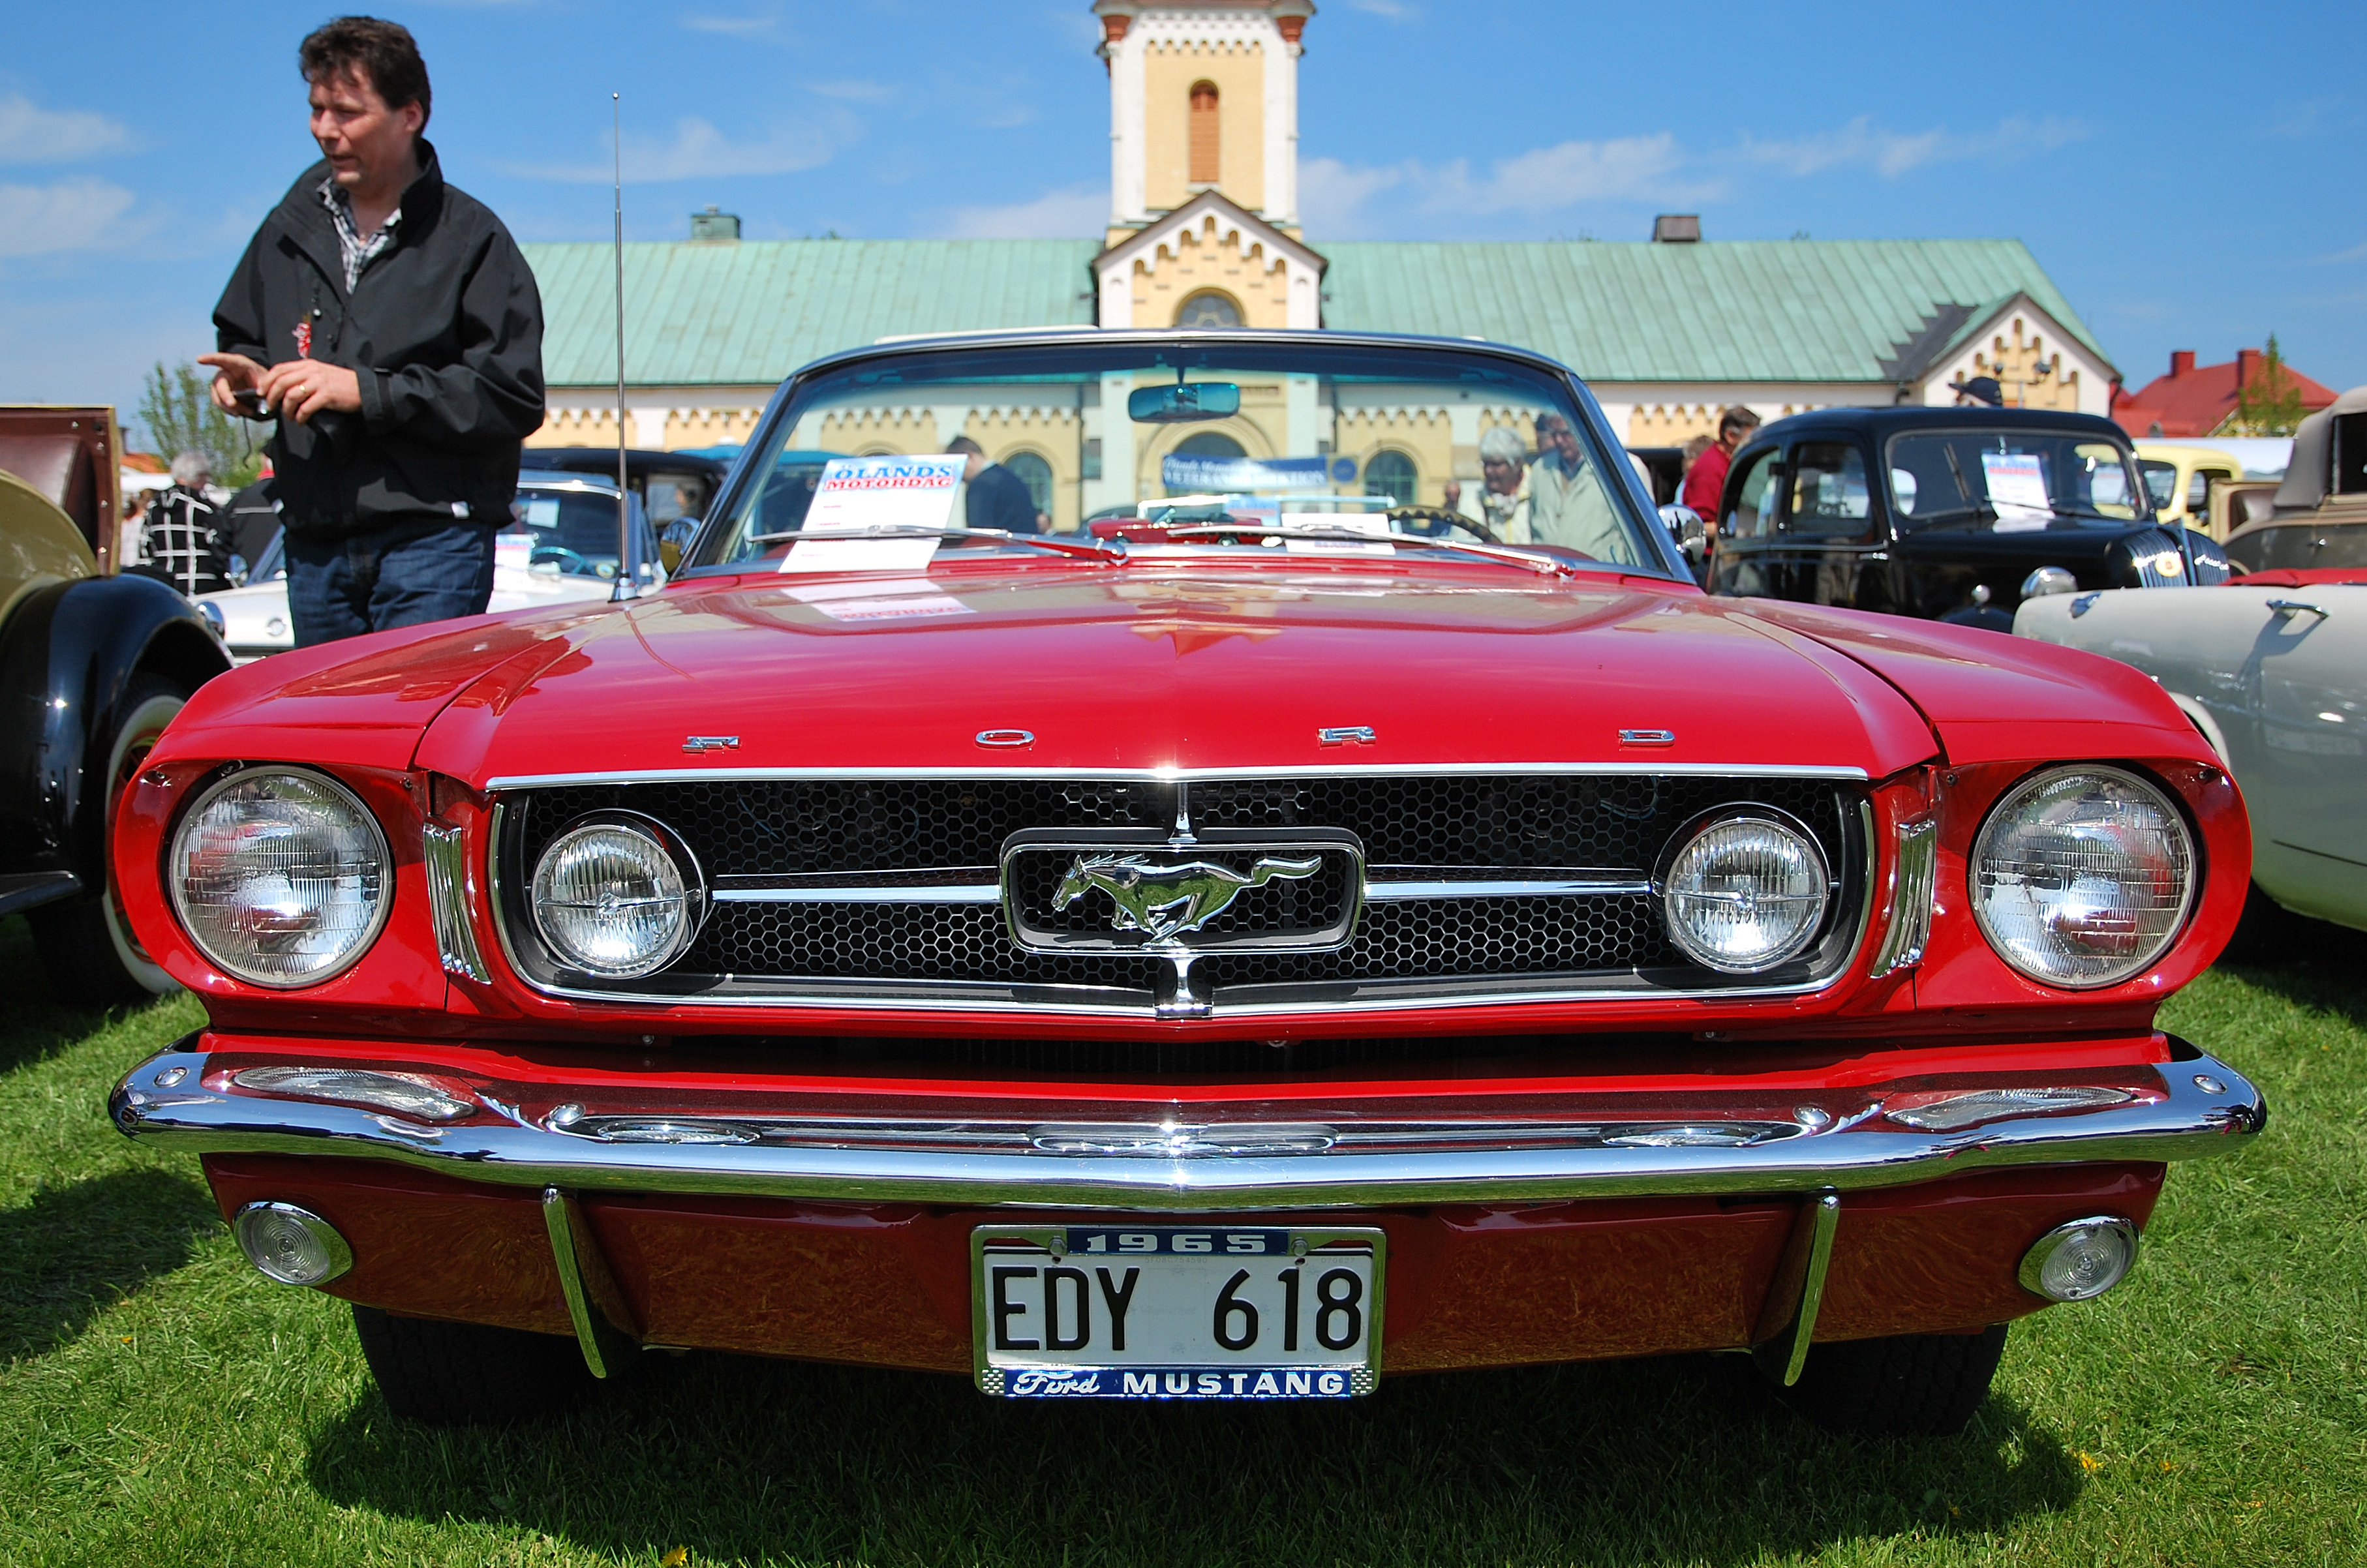 ford mustang front view. file:1965 ford mustang convertible at Ölands motordag 2012 (front view).jpg front view n